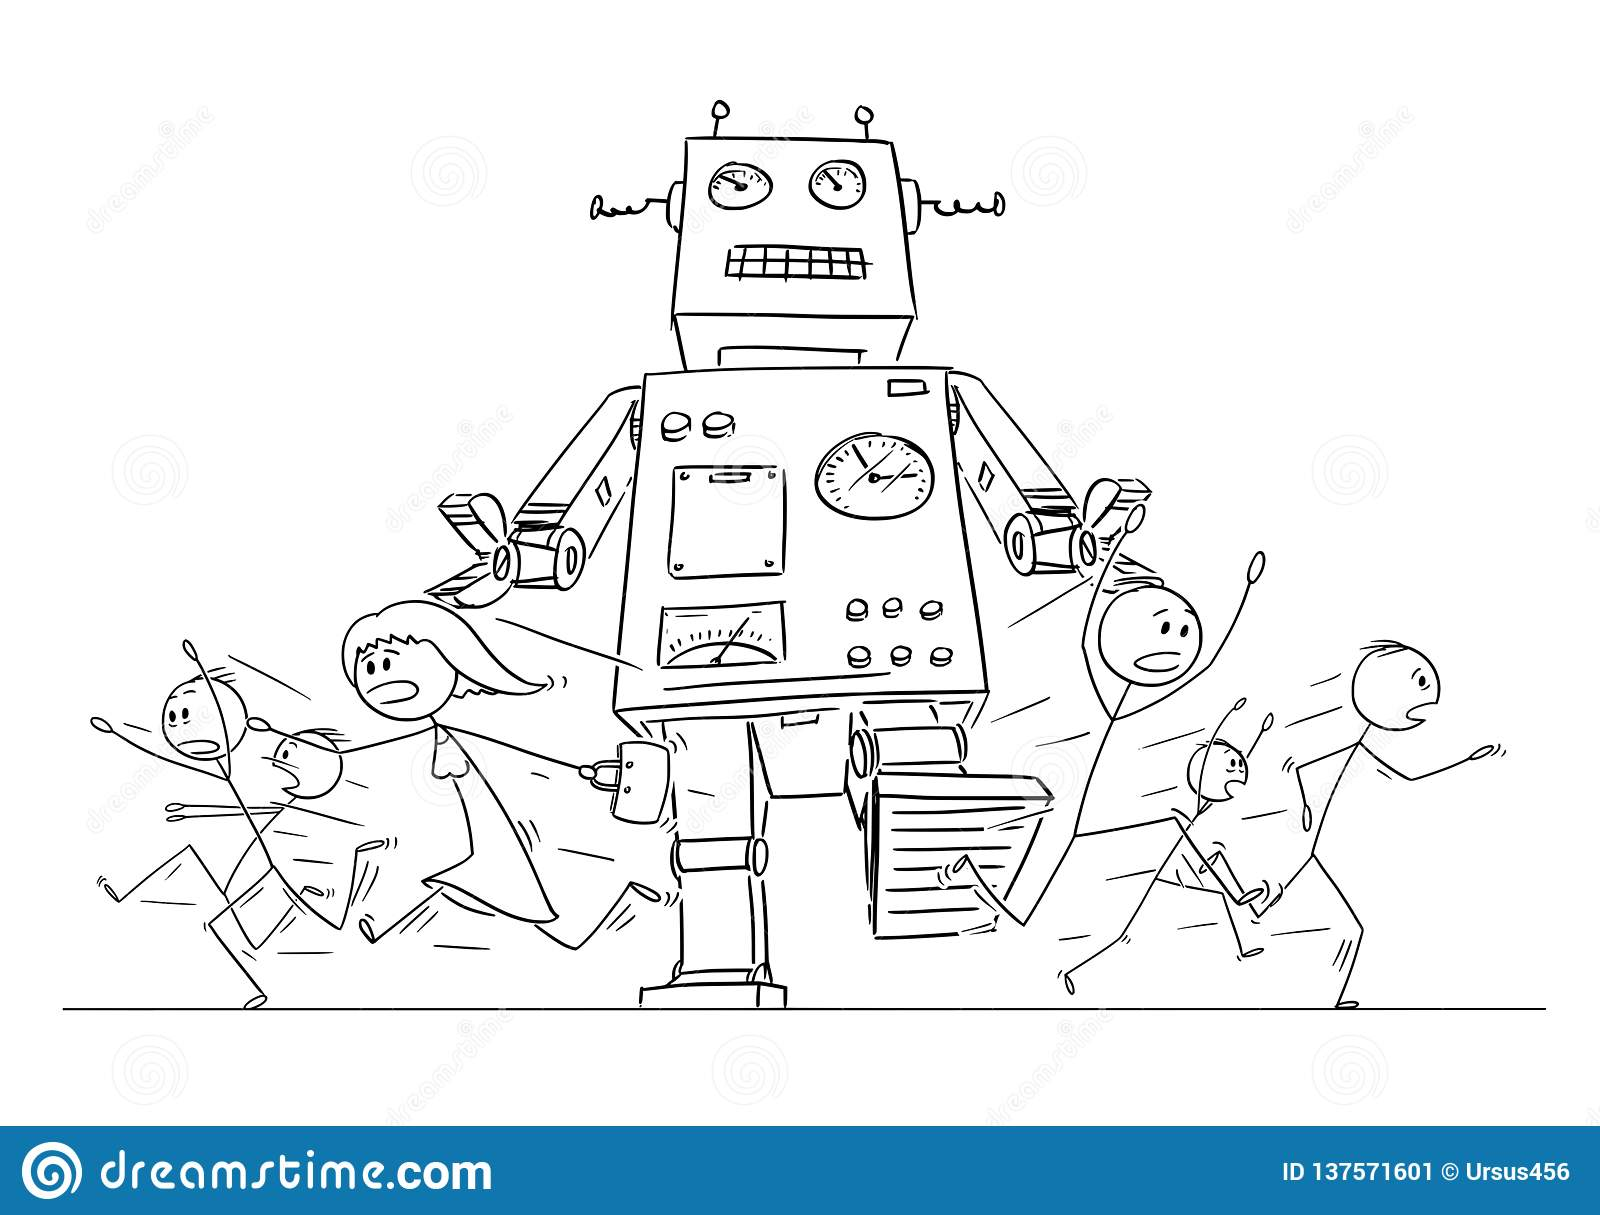 Cartoon Drawing of Crowd of People Running in Panic Away From Giant Retro Robot